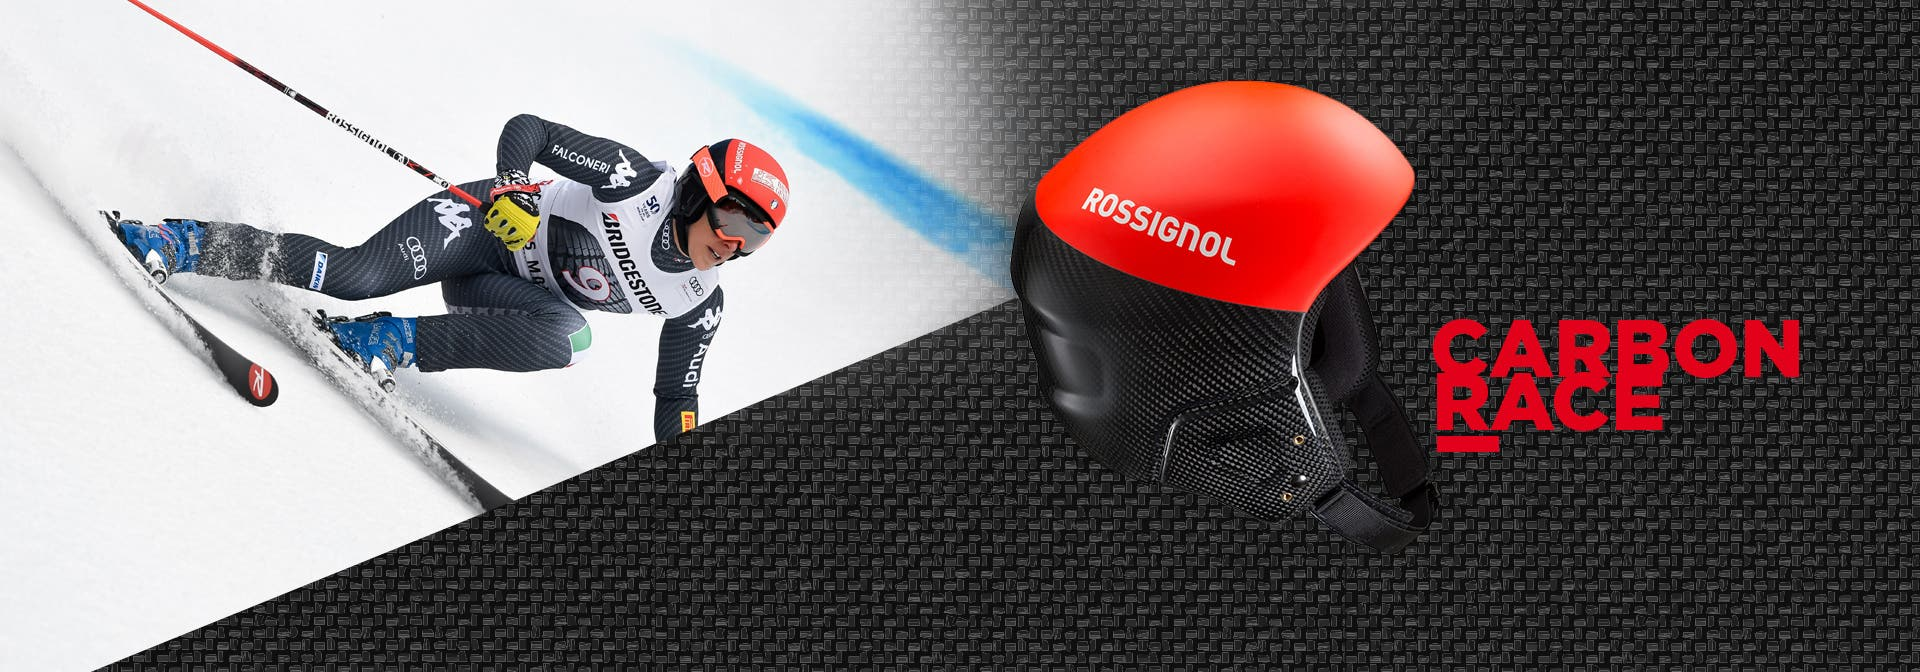 Rossignol Hero carbon race helmet